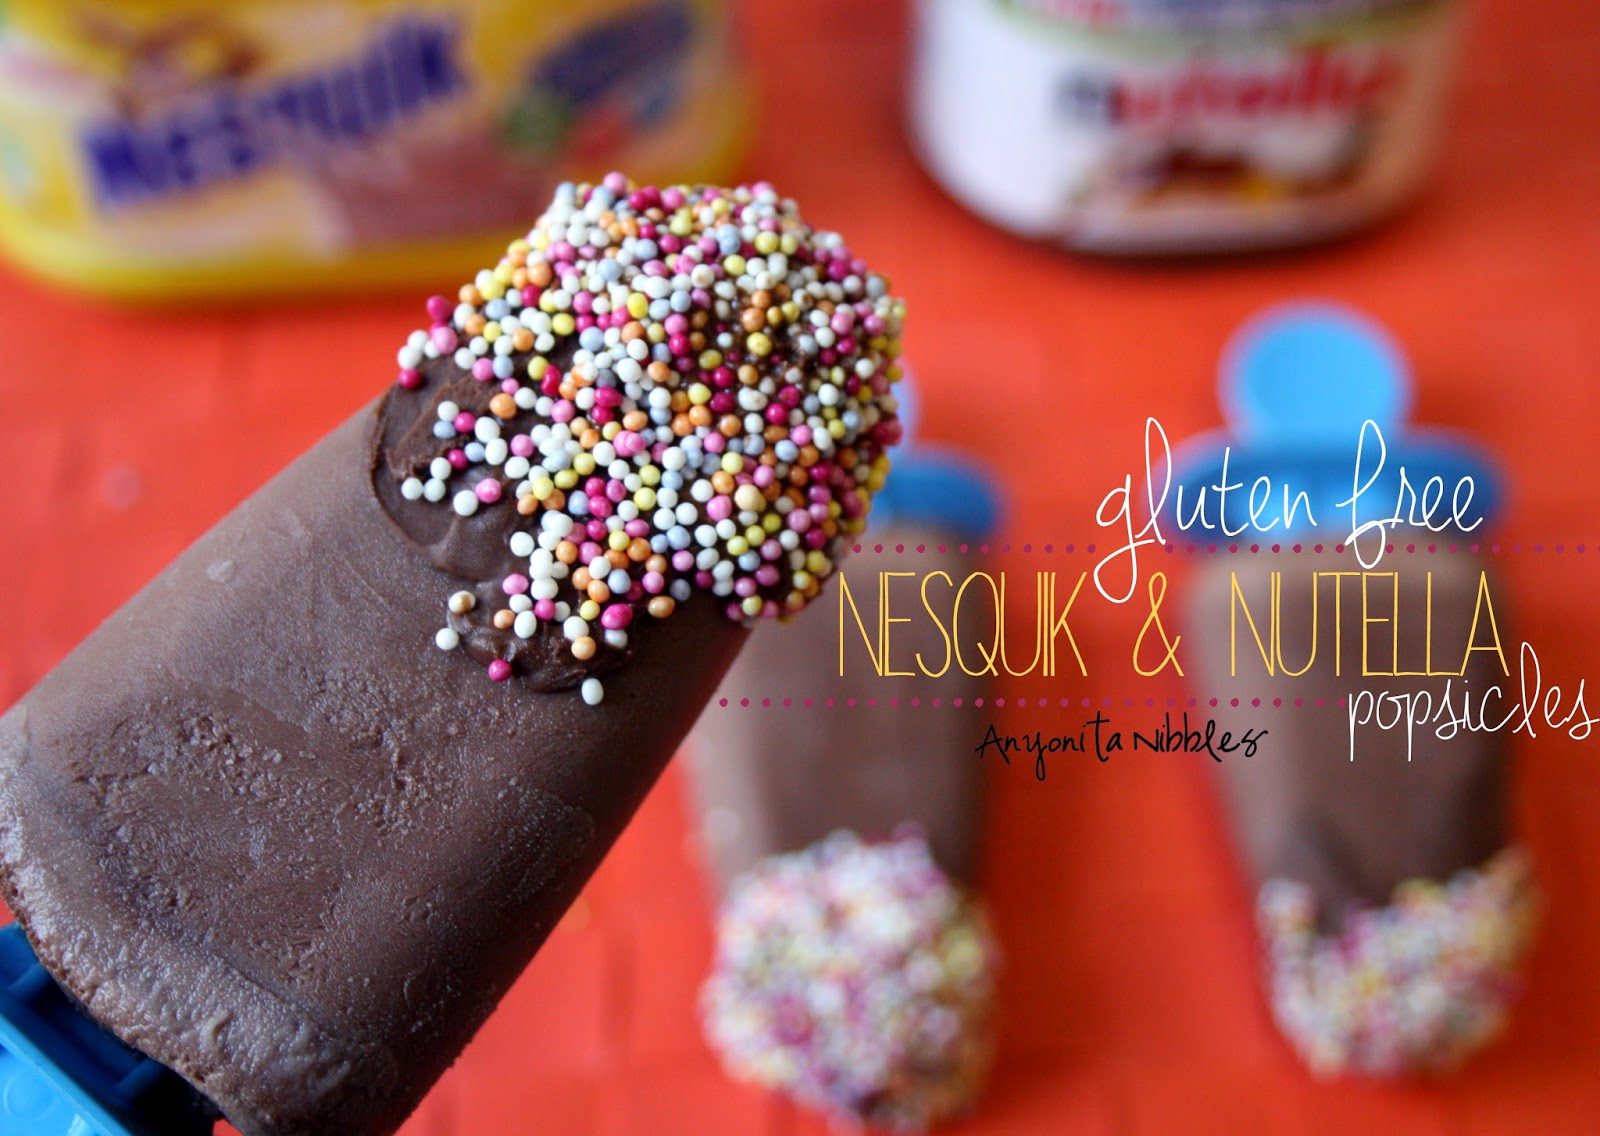 Gluten Free Nesquik & Nutella Popsicles by Anyonita Nibbles